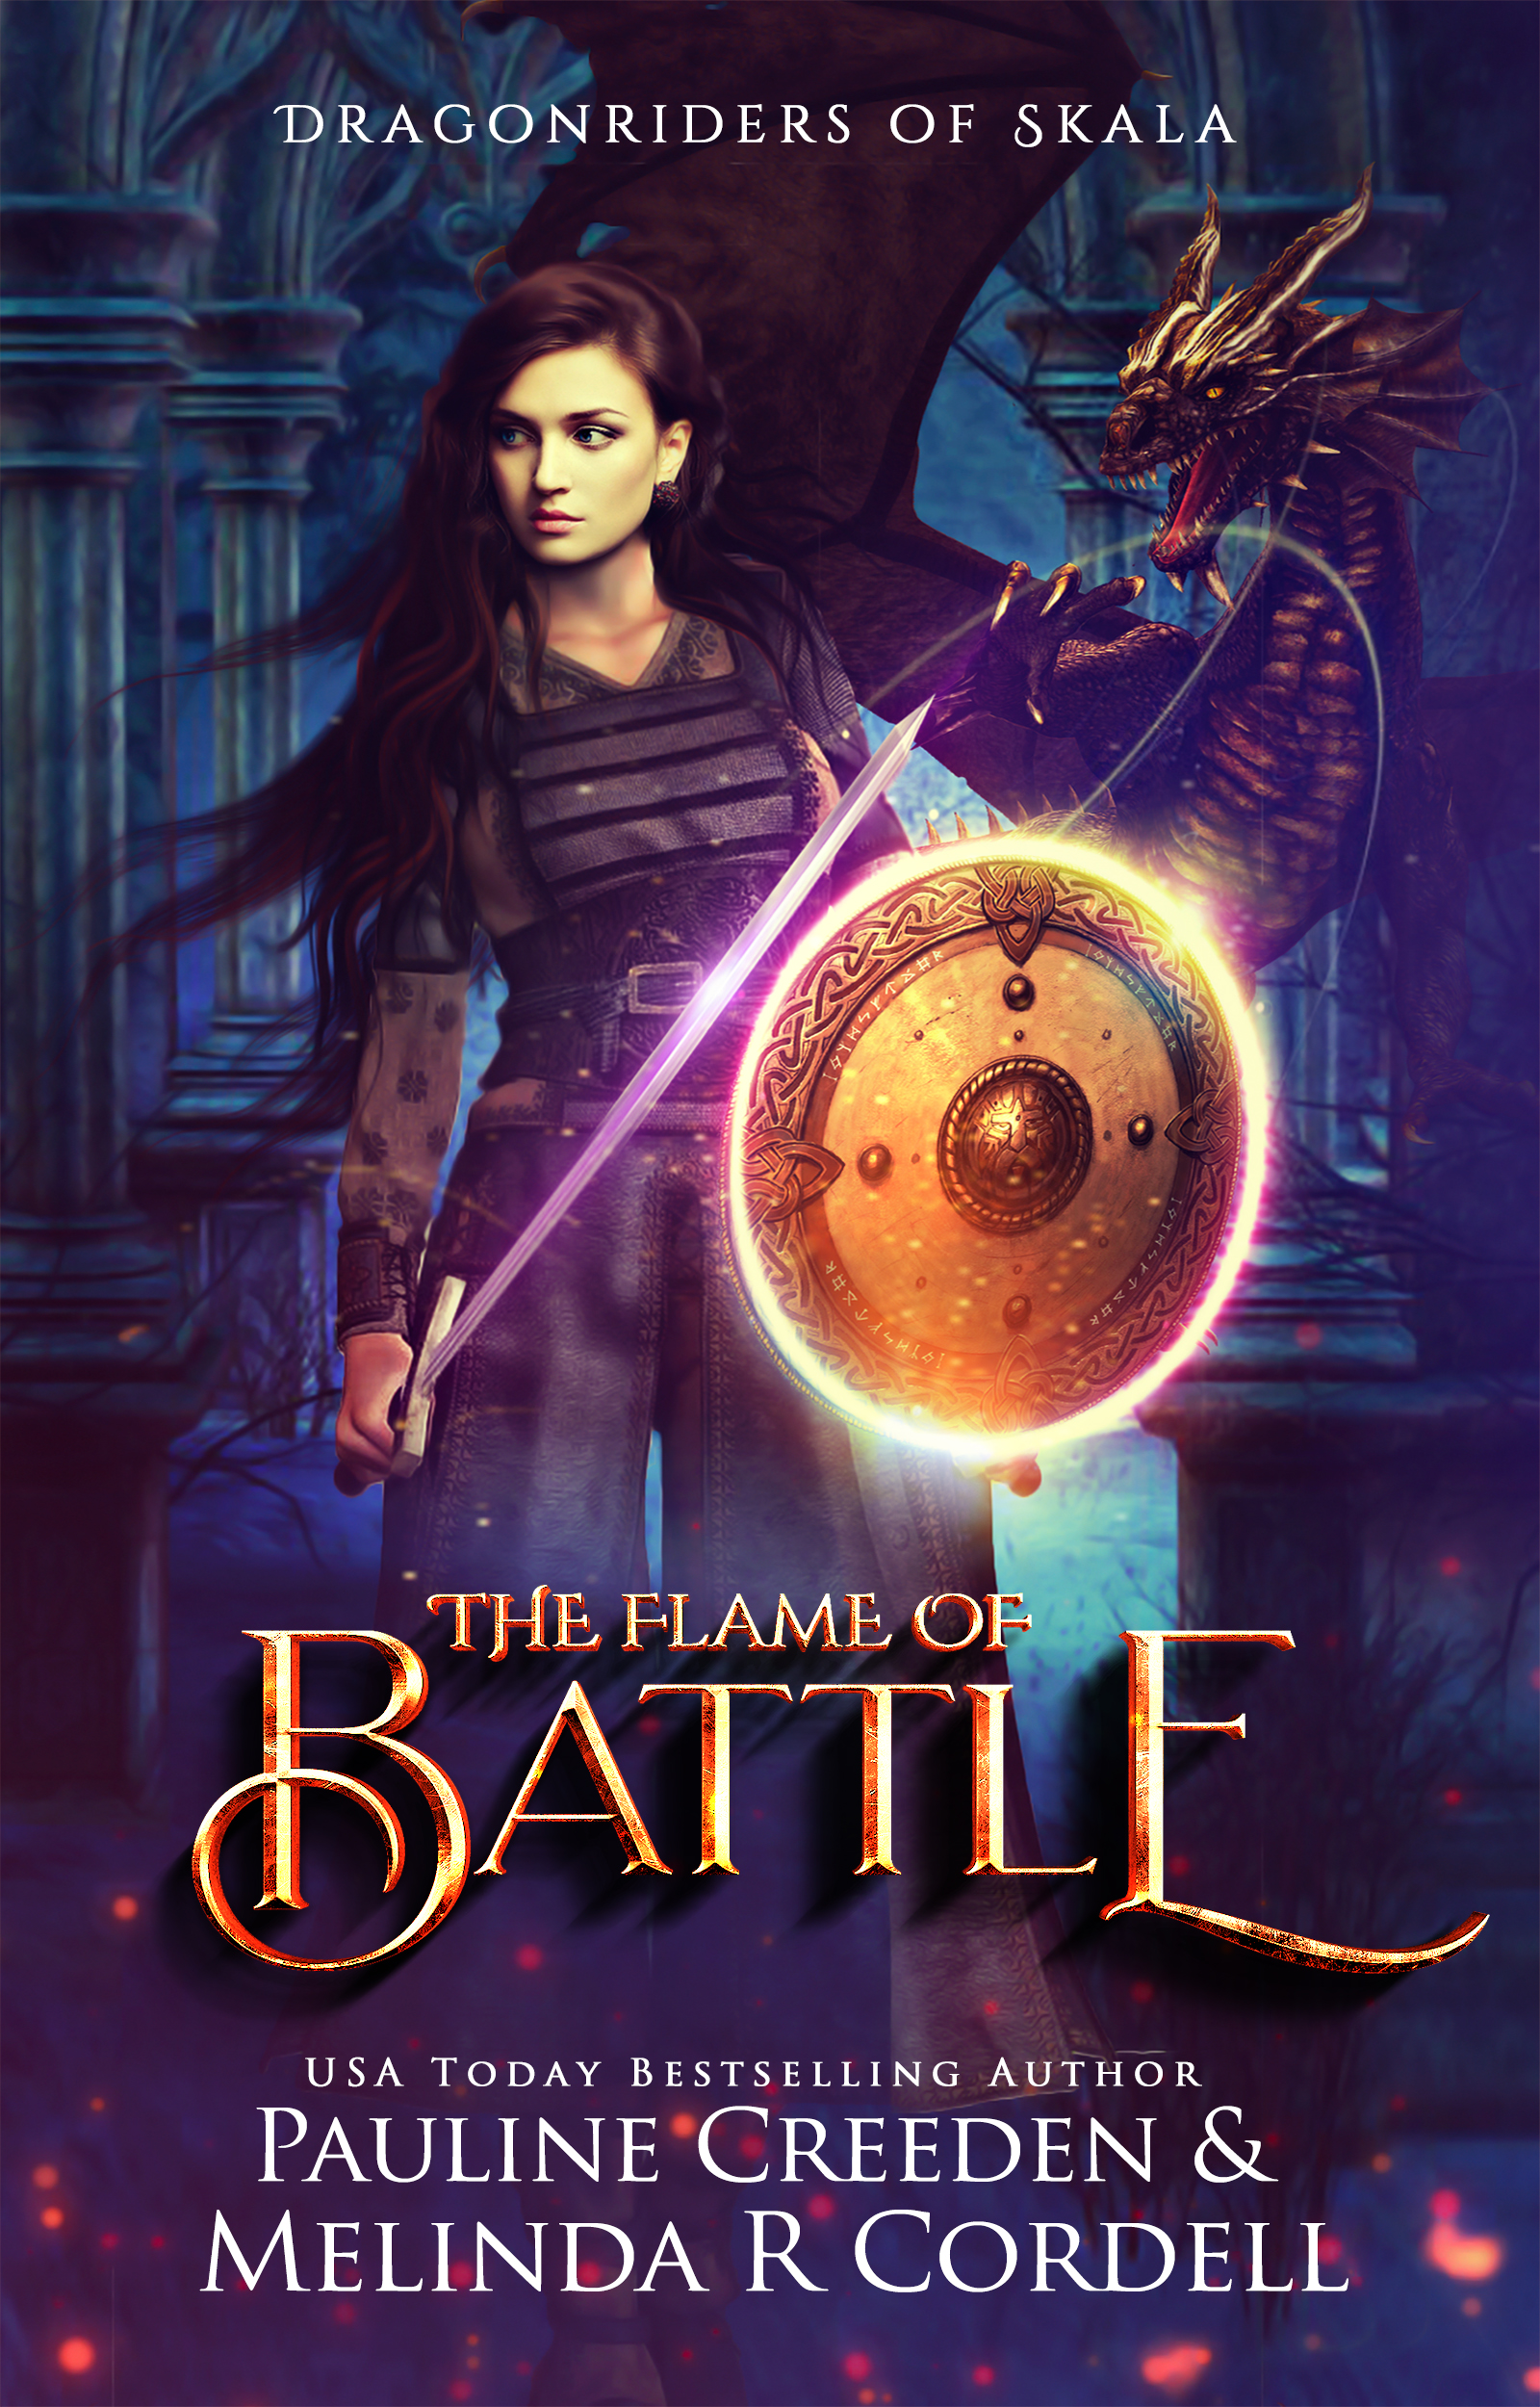 The Flame of Battle